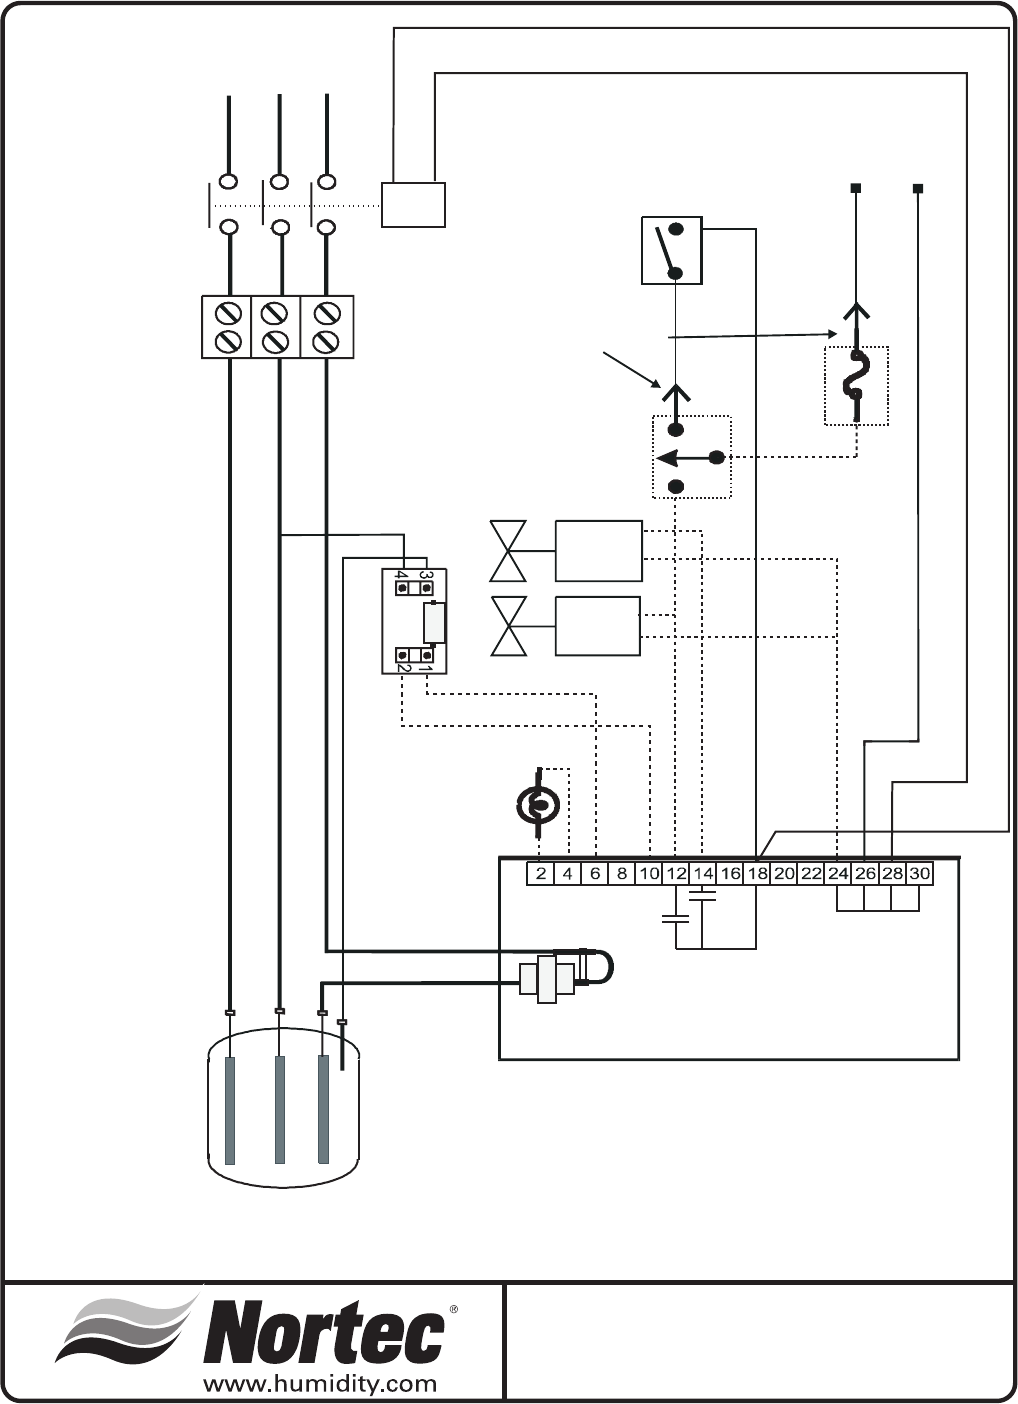 e79354cb cb67 4cc3 a3ea e40b78938308 bga page 10 of nortec industries humidifier mes u user guide humid a mist wiring diagram at gsmportal.co